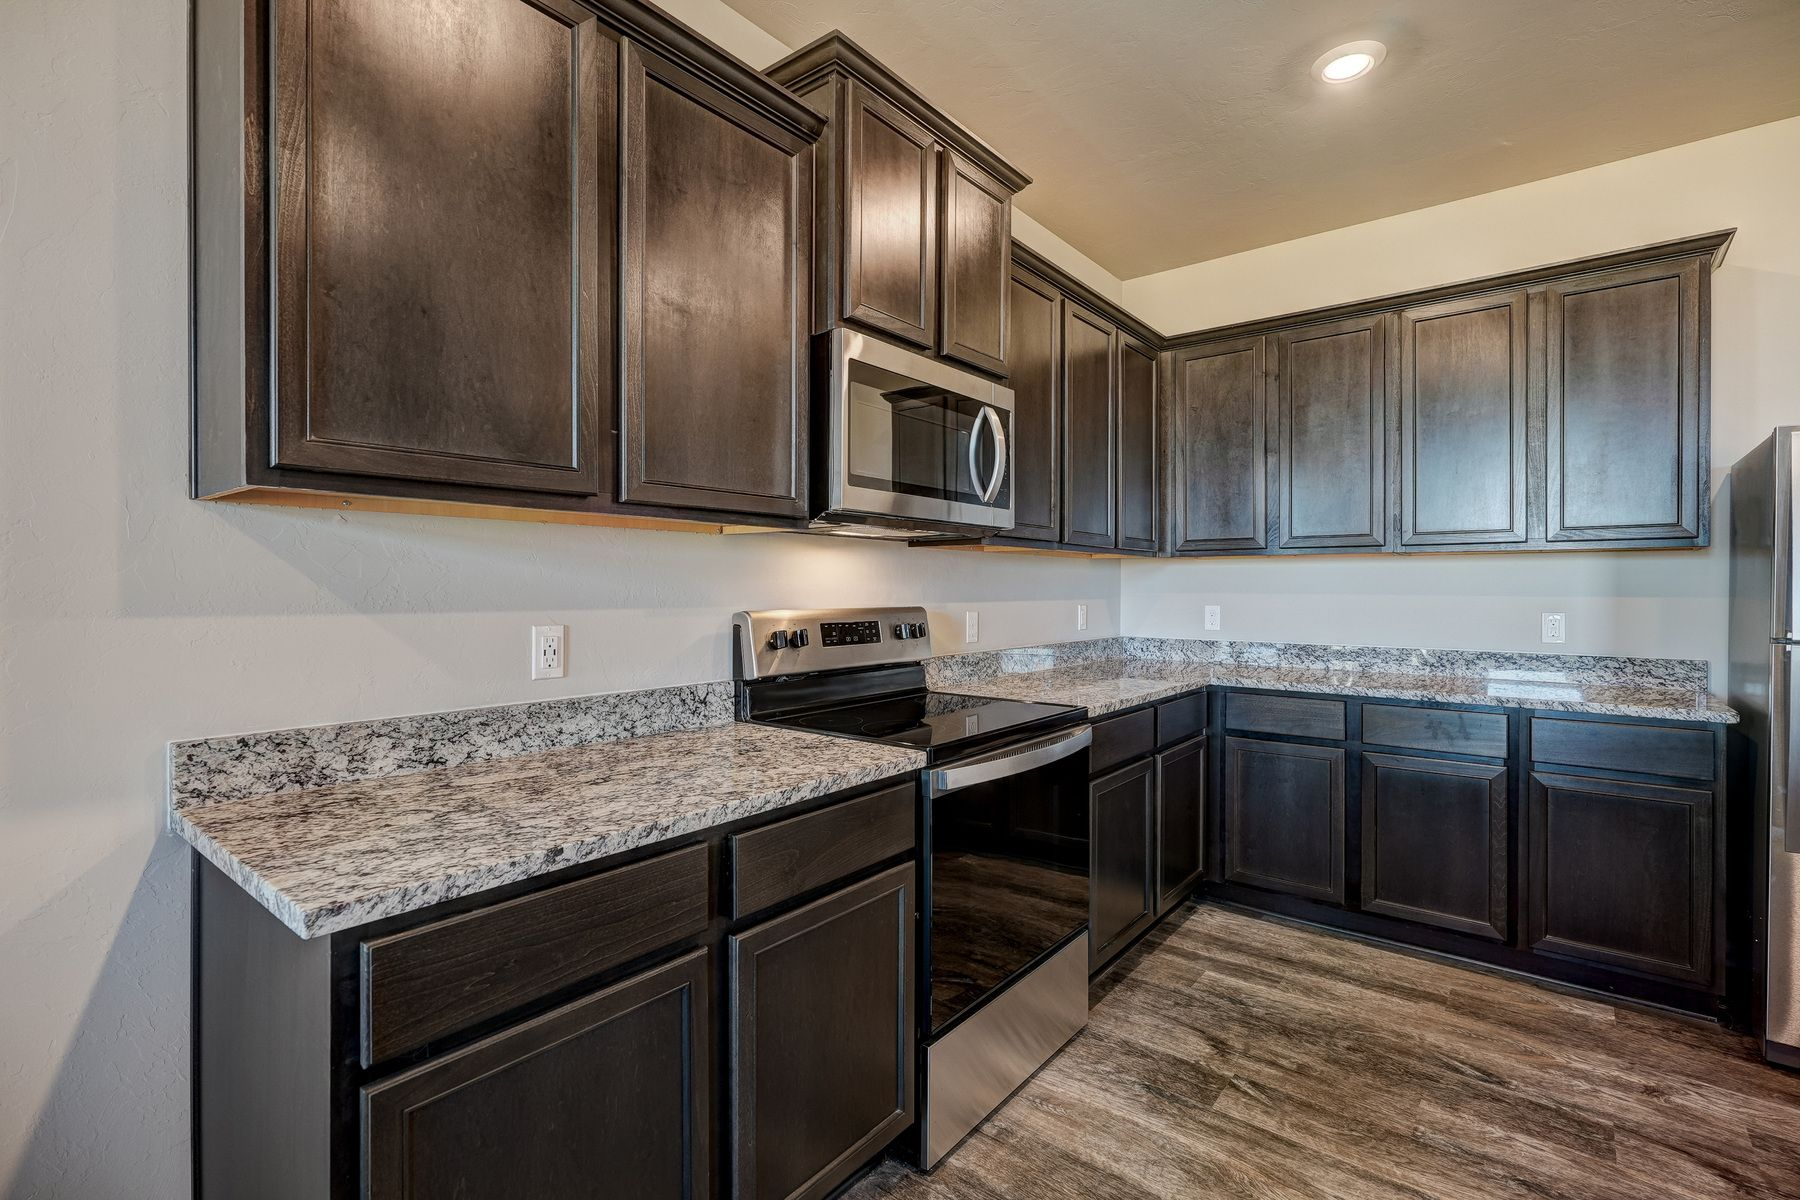 Kitchen featured in the Asher By LGI Homes in Oklahoma City, OK